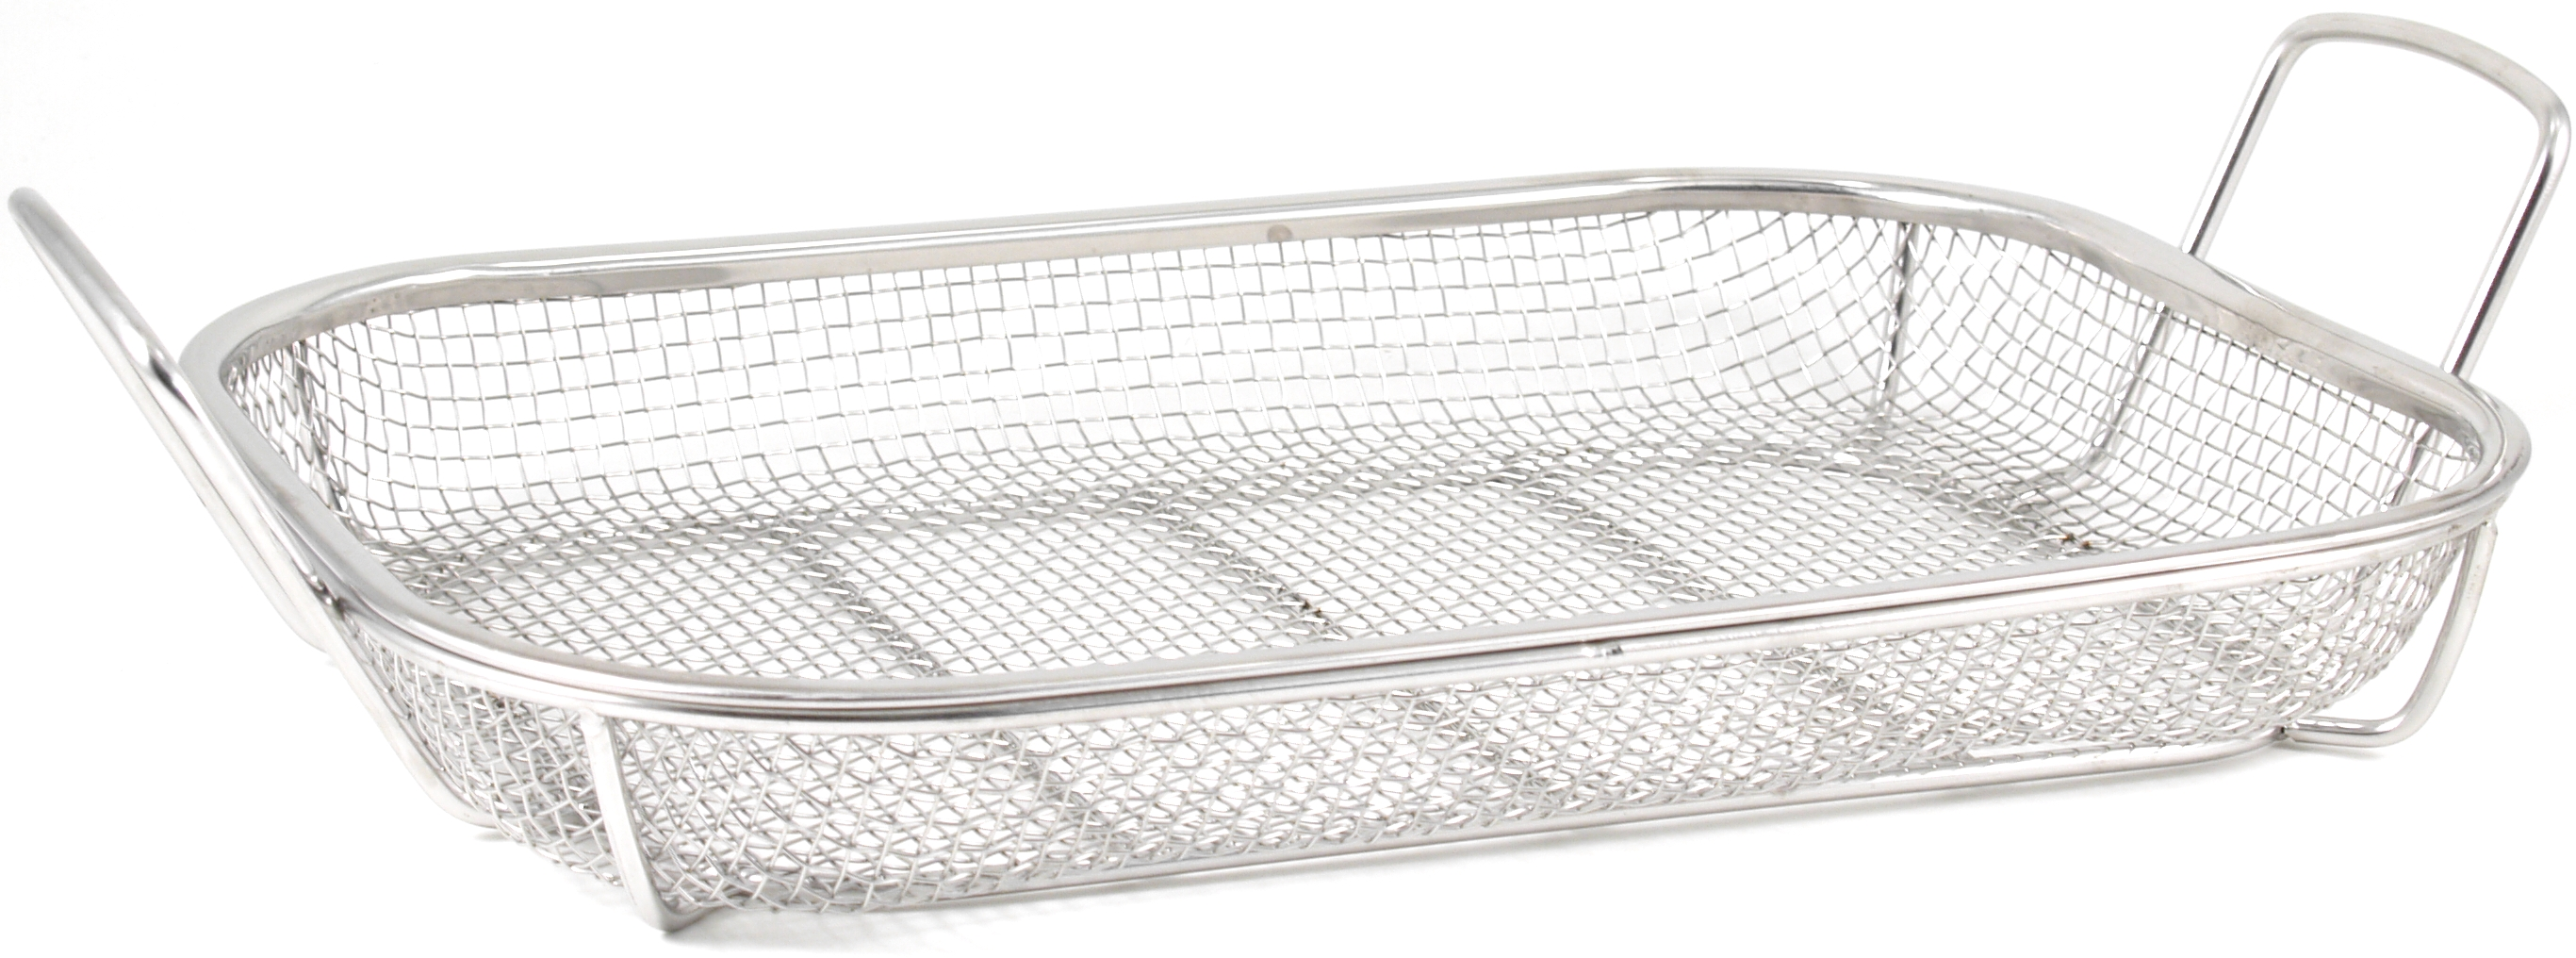 Maverick Stainless Steel Mesh Barbecue Roasting Pan